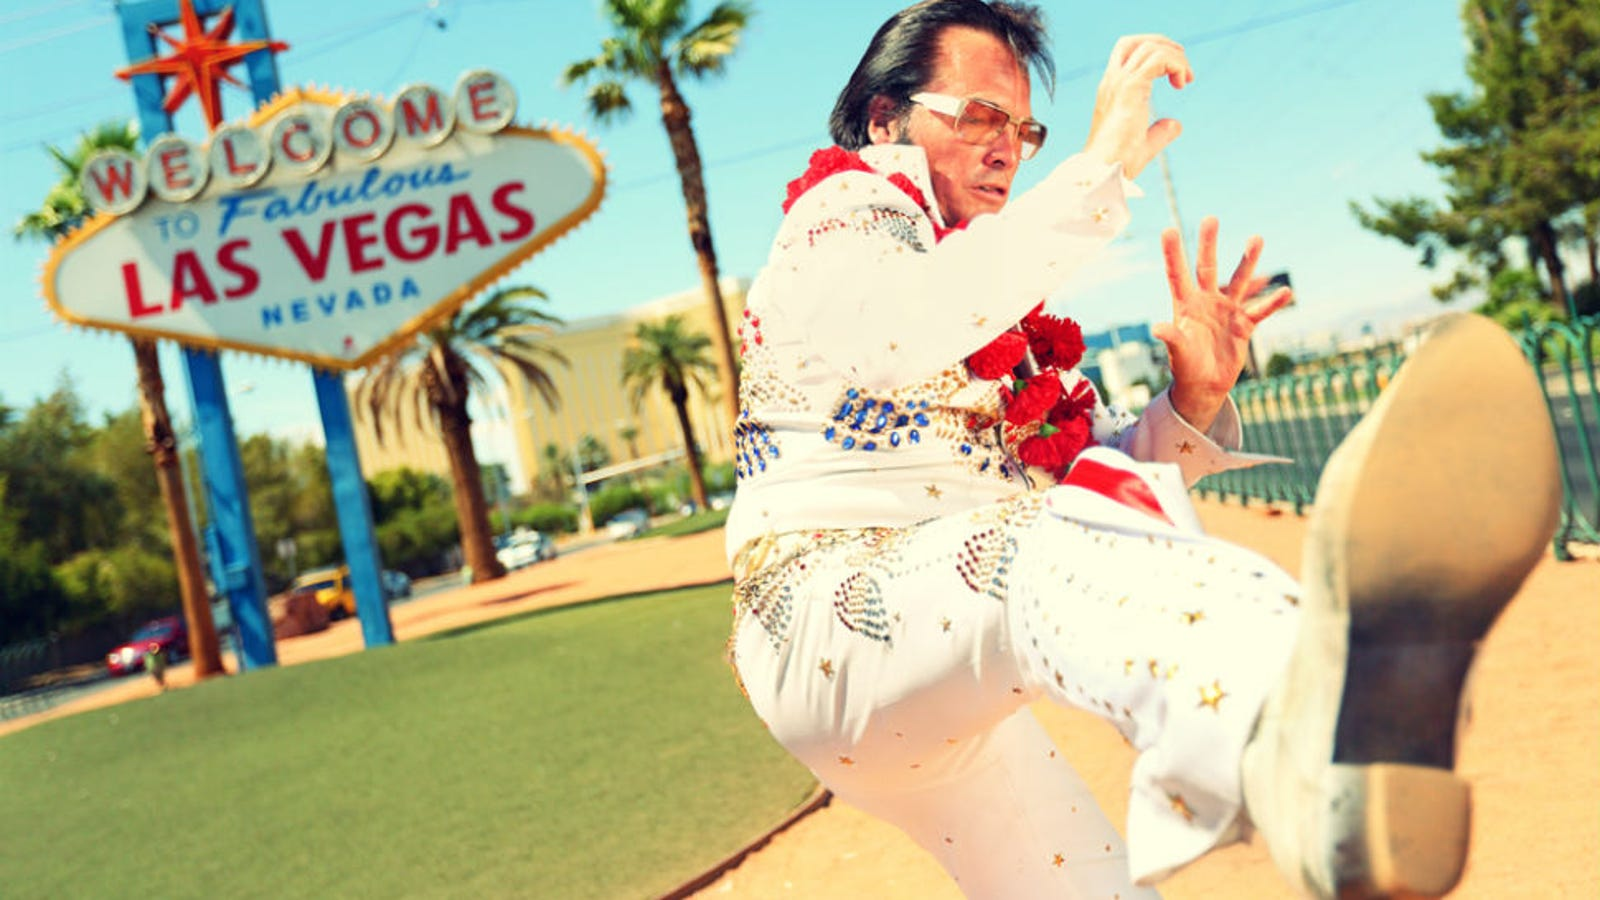 Elvis wedding chapels in las vegas won39t let same sex for Gay wedding packages las vegas